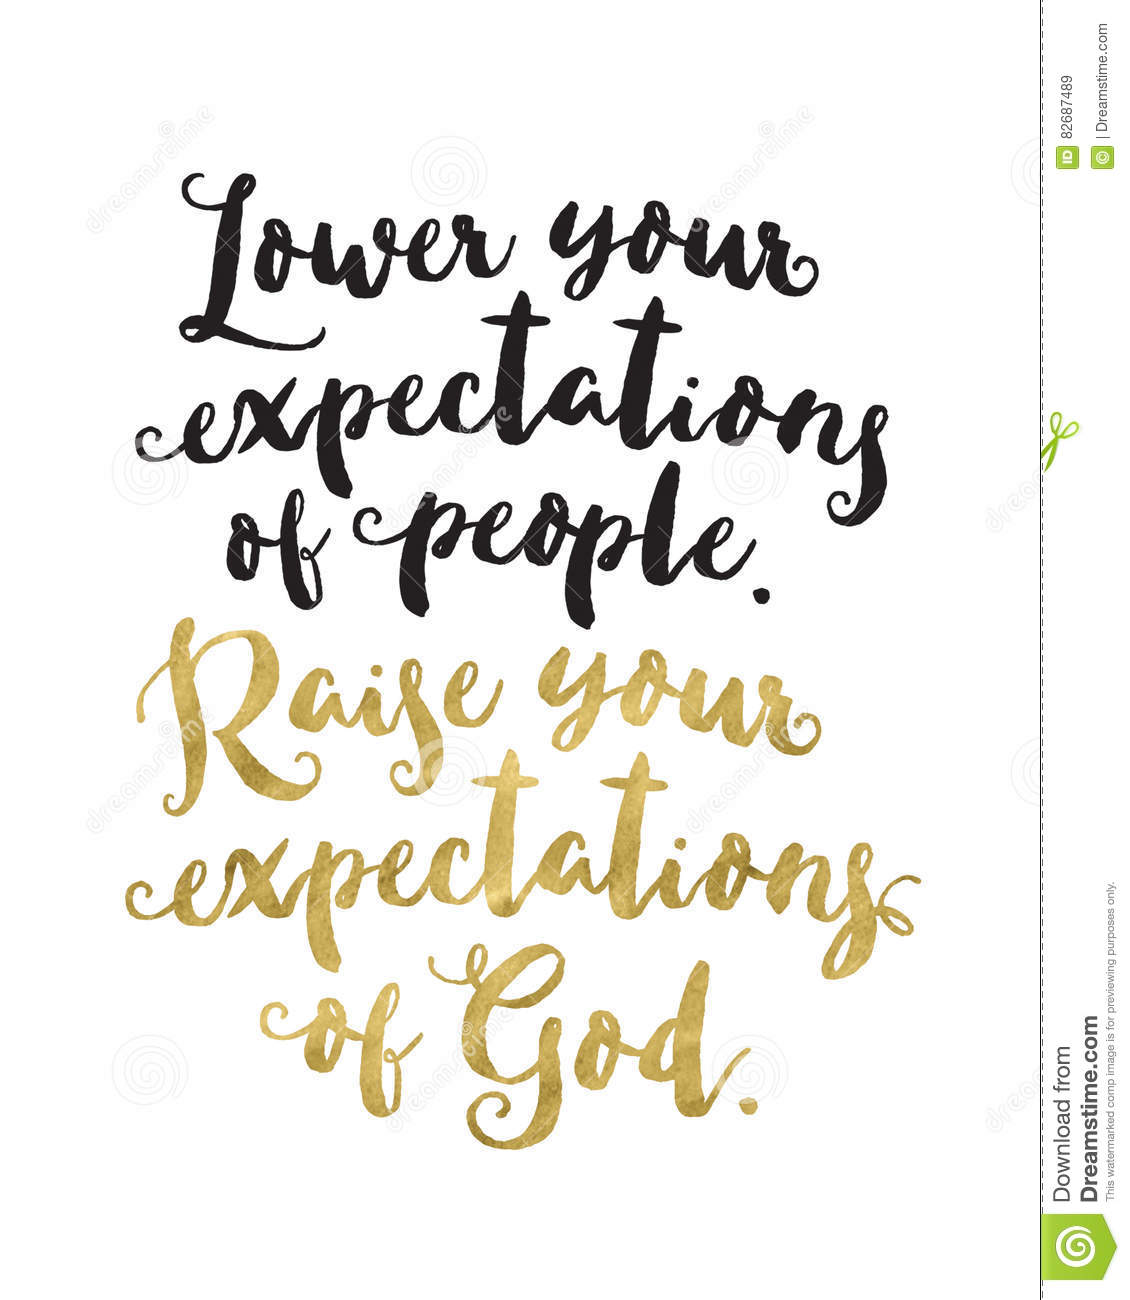 lower your expectations of people raise your expectations of god `lower your expectations of people raise your expectations of god`